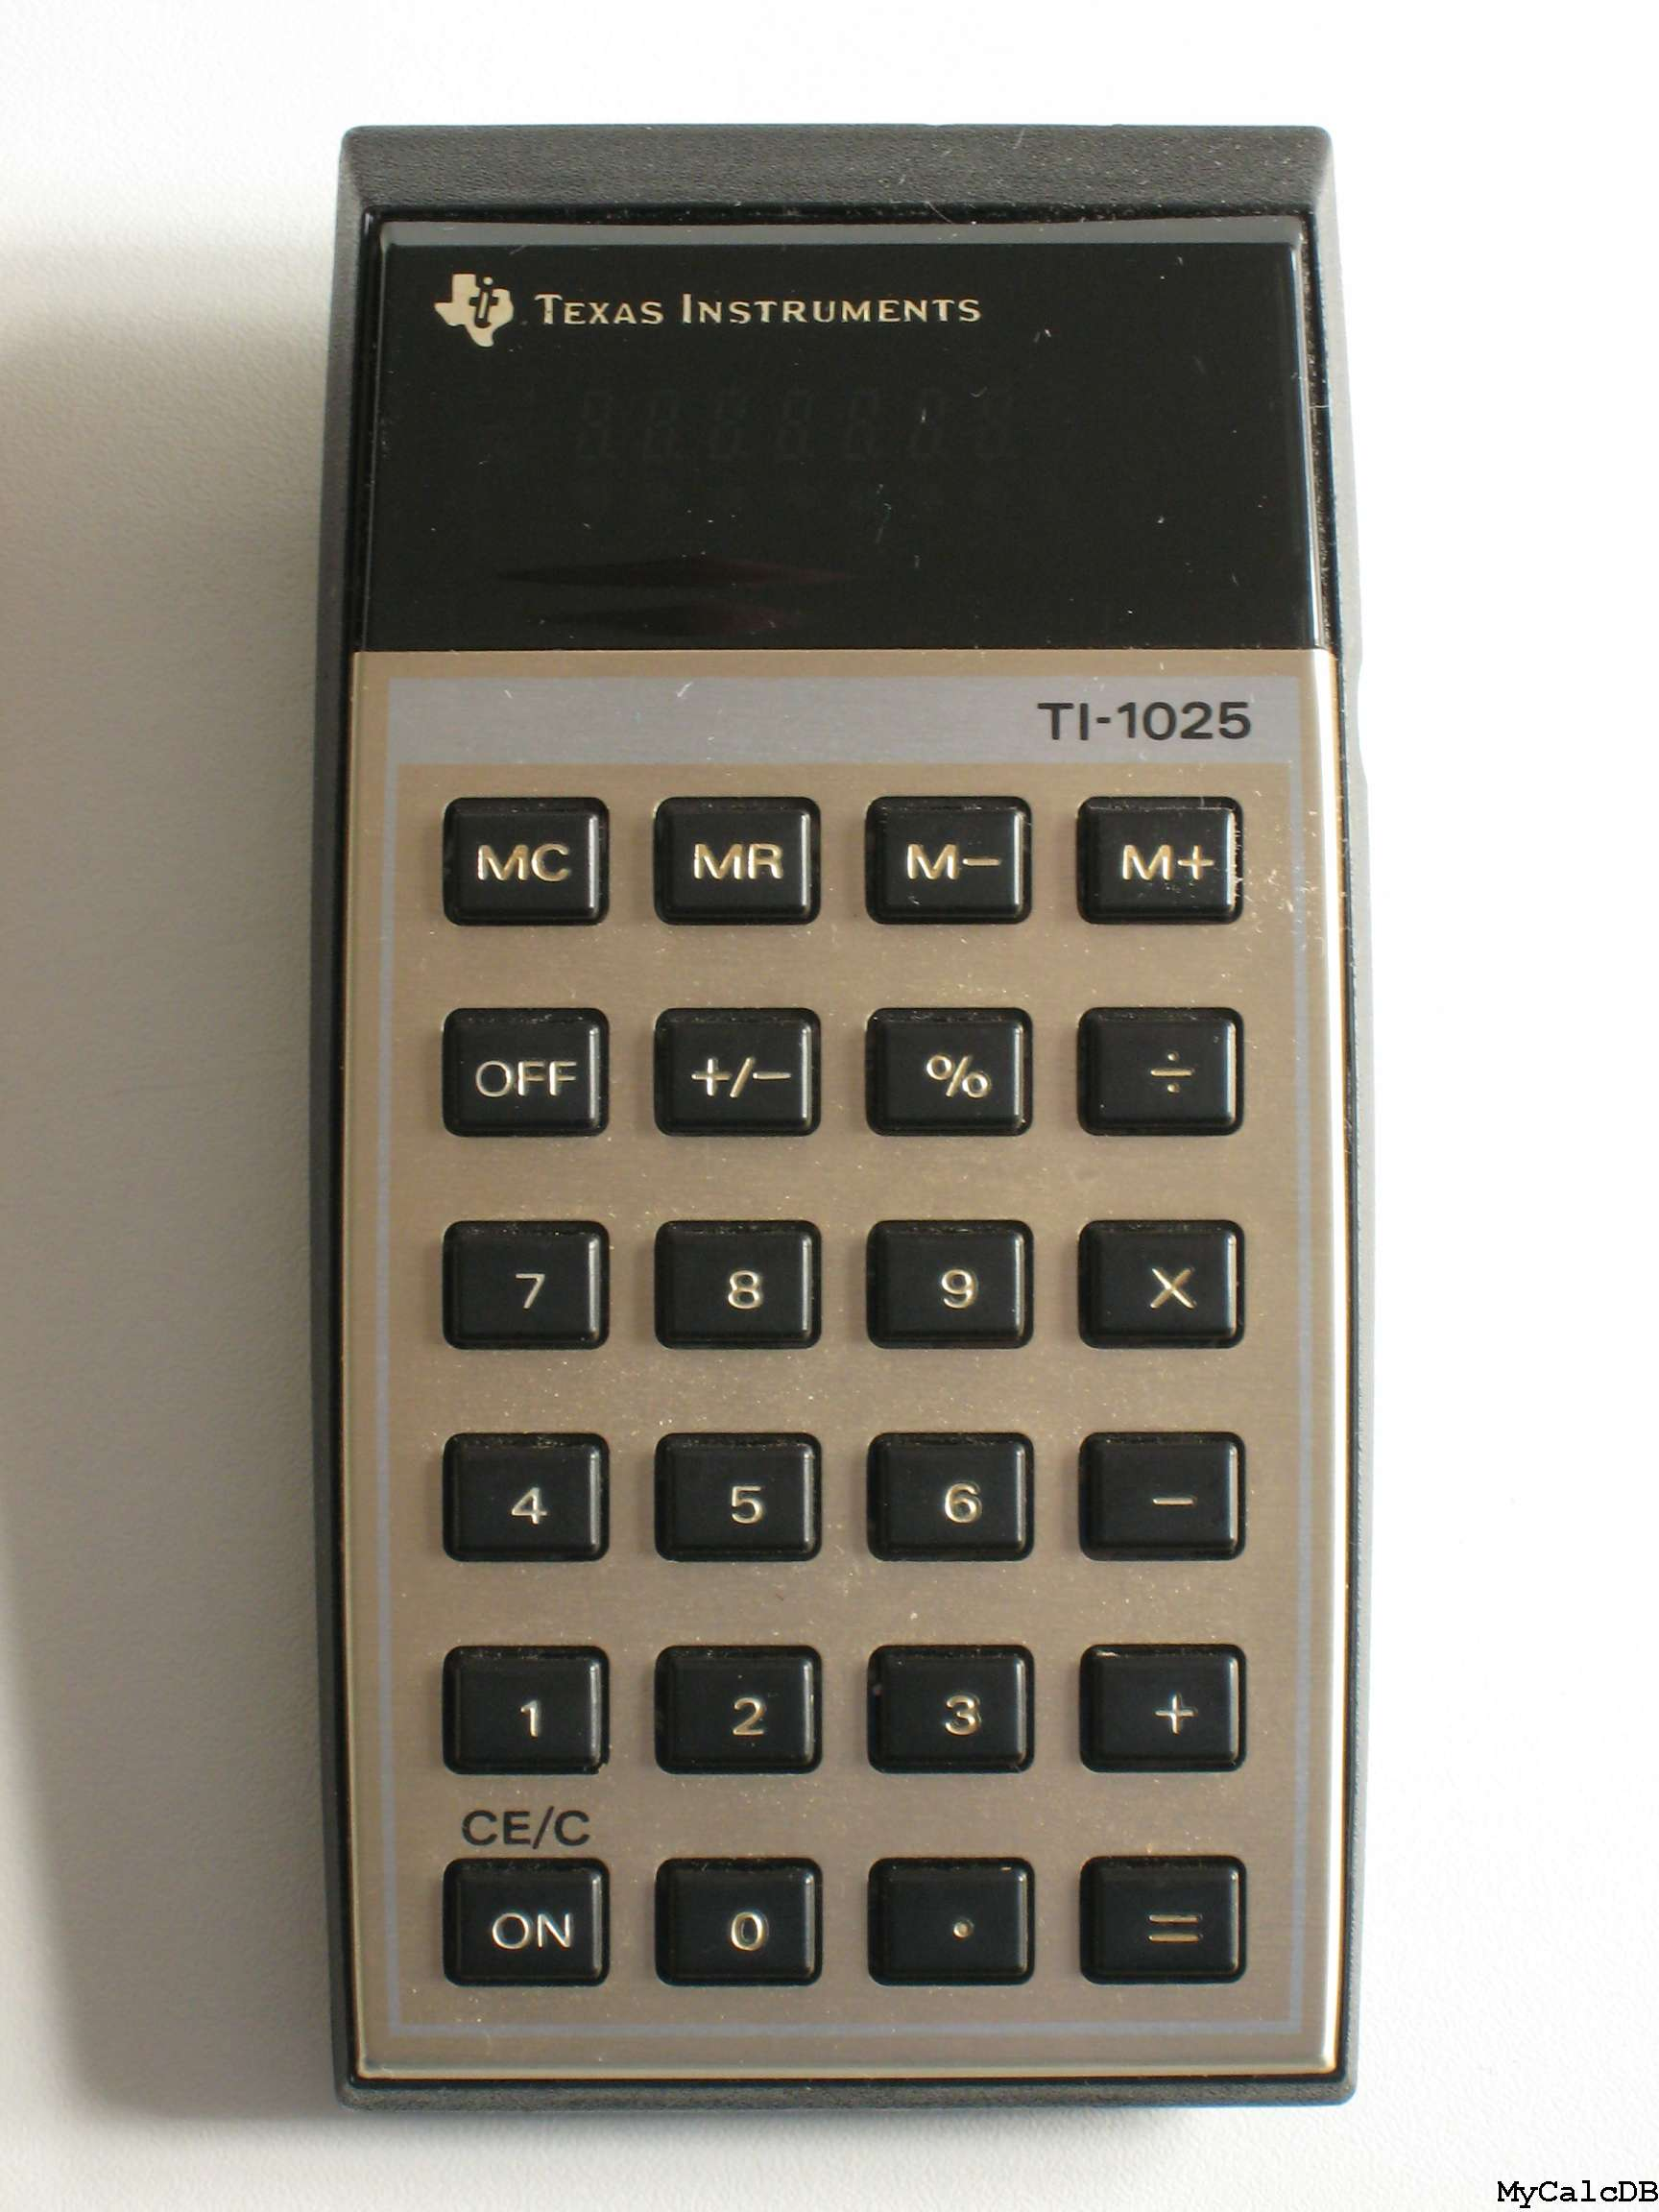 Texas Instruments TI-1025